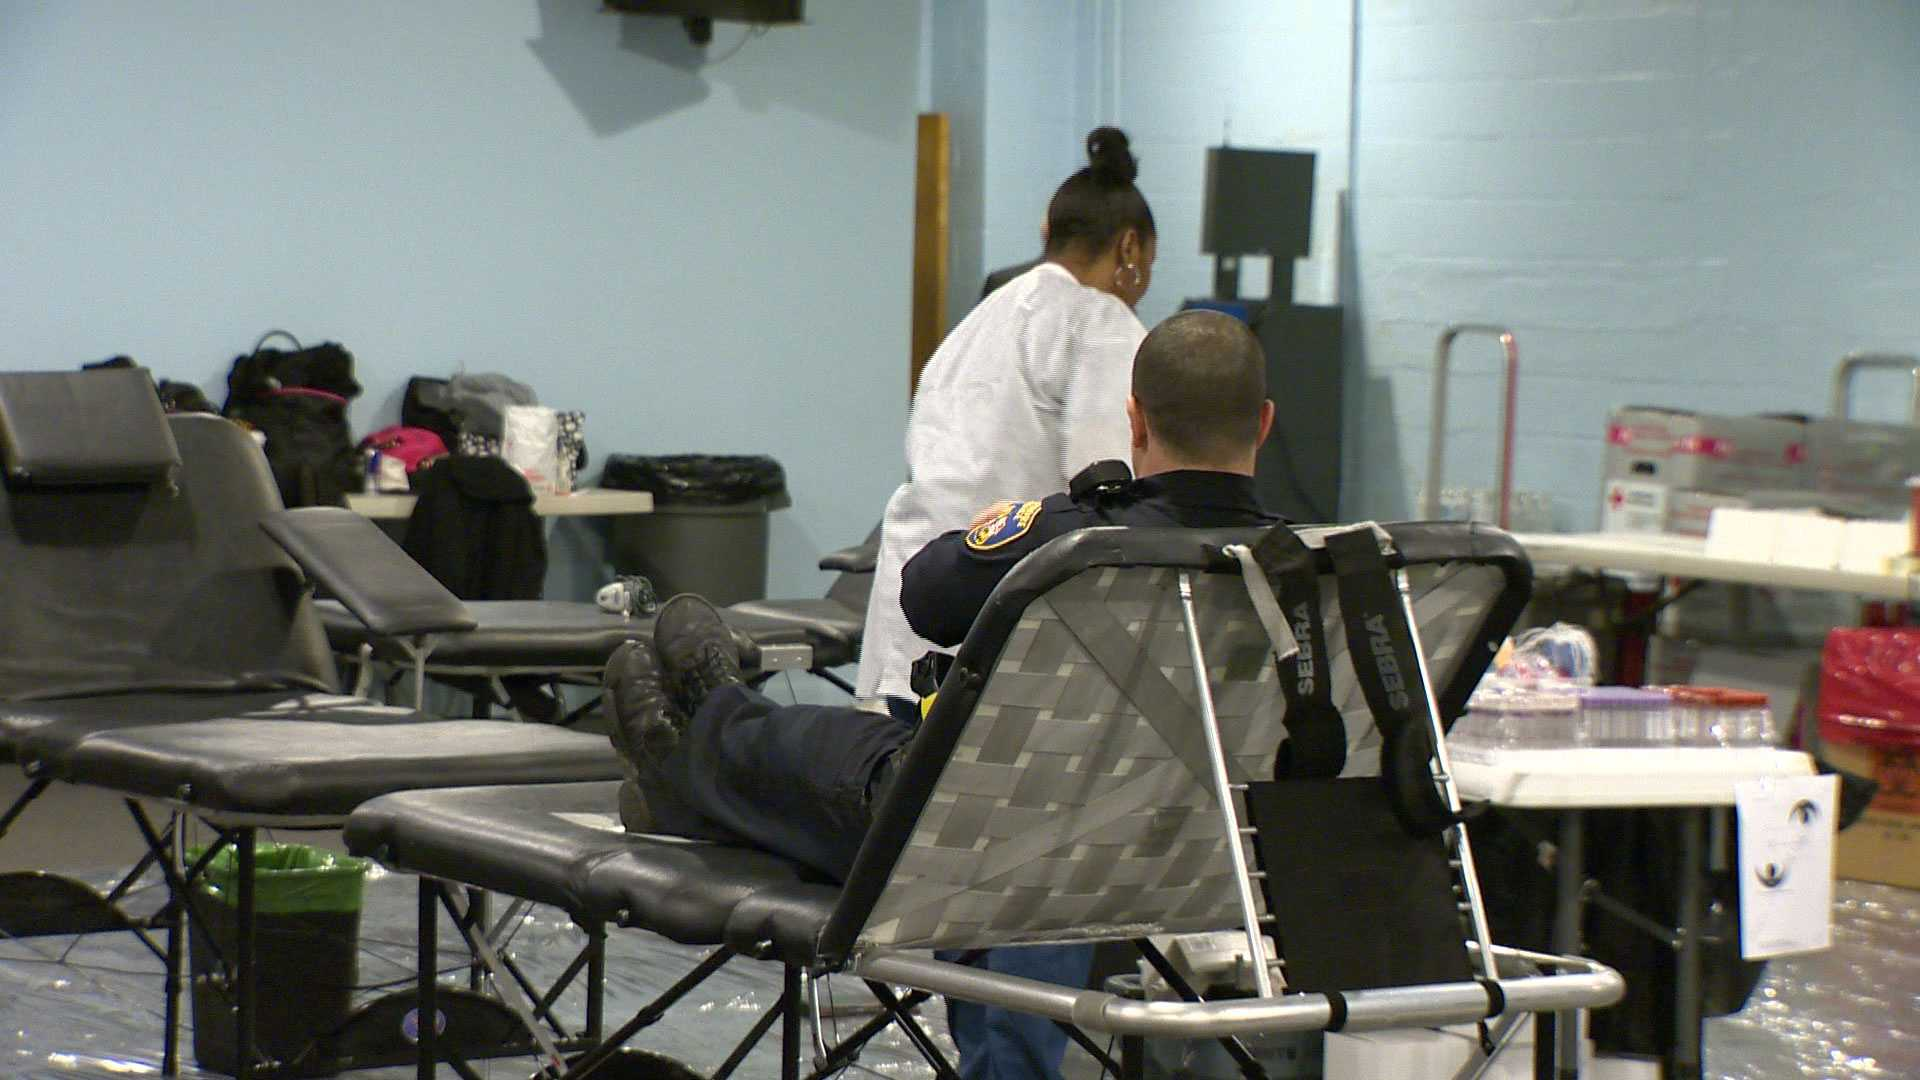 An officer donates blood during a drive in honor of Baltimore Police Sgt. Keith McNeill, who was shot several times while off duty in March.